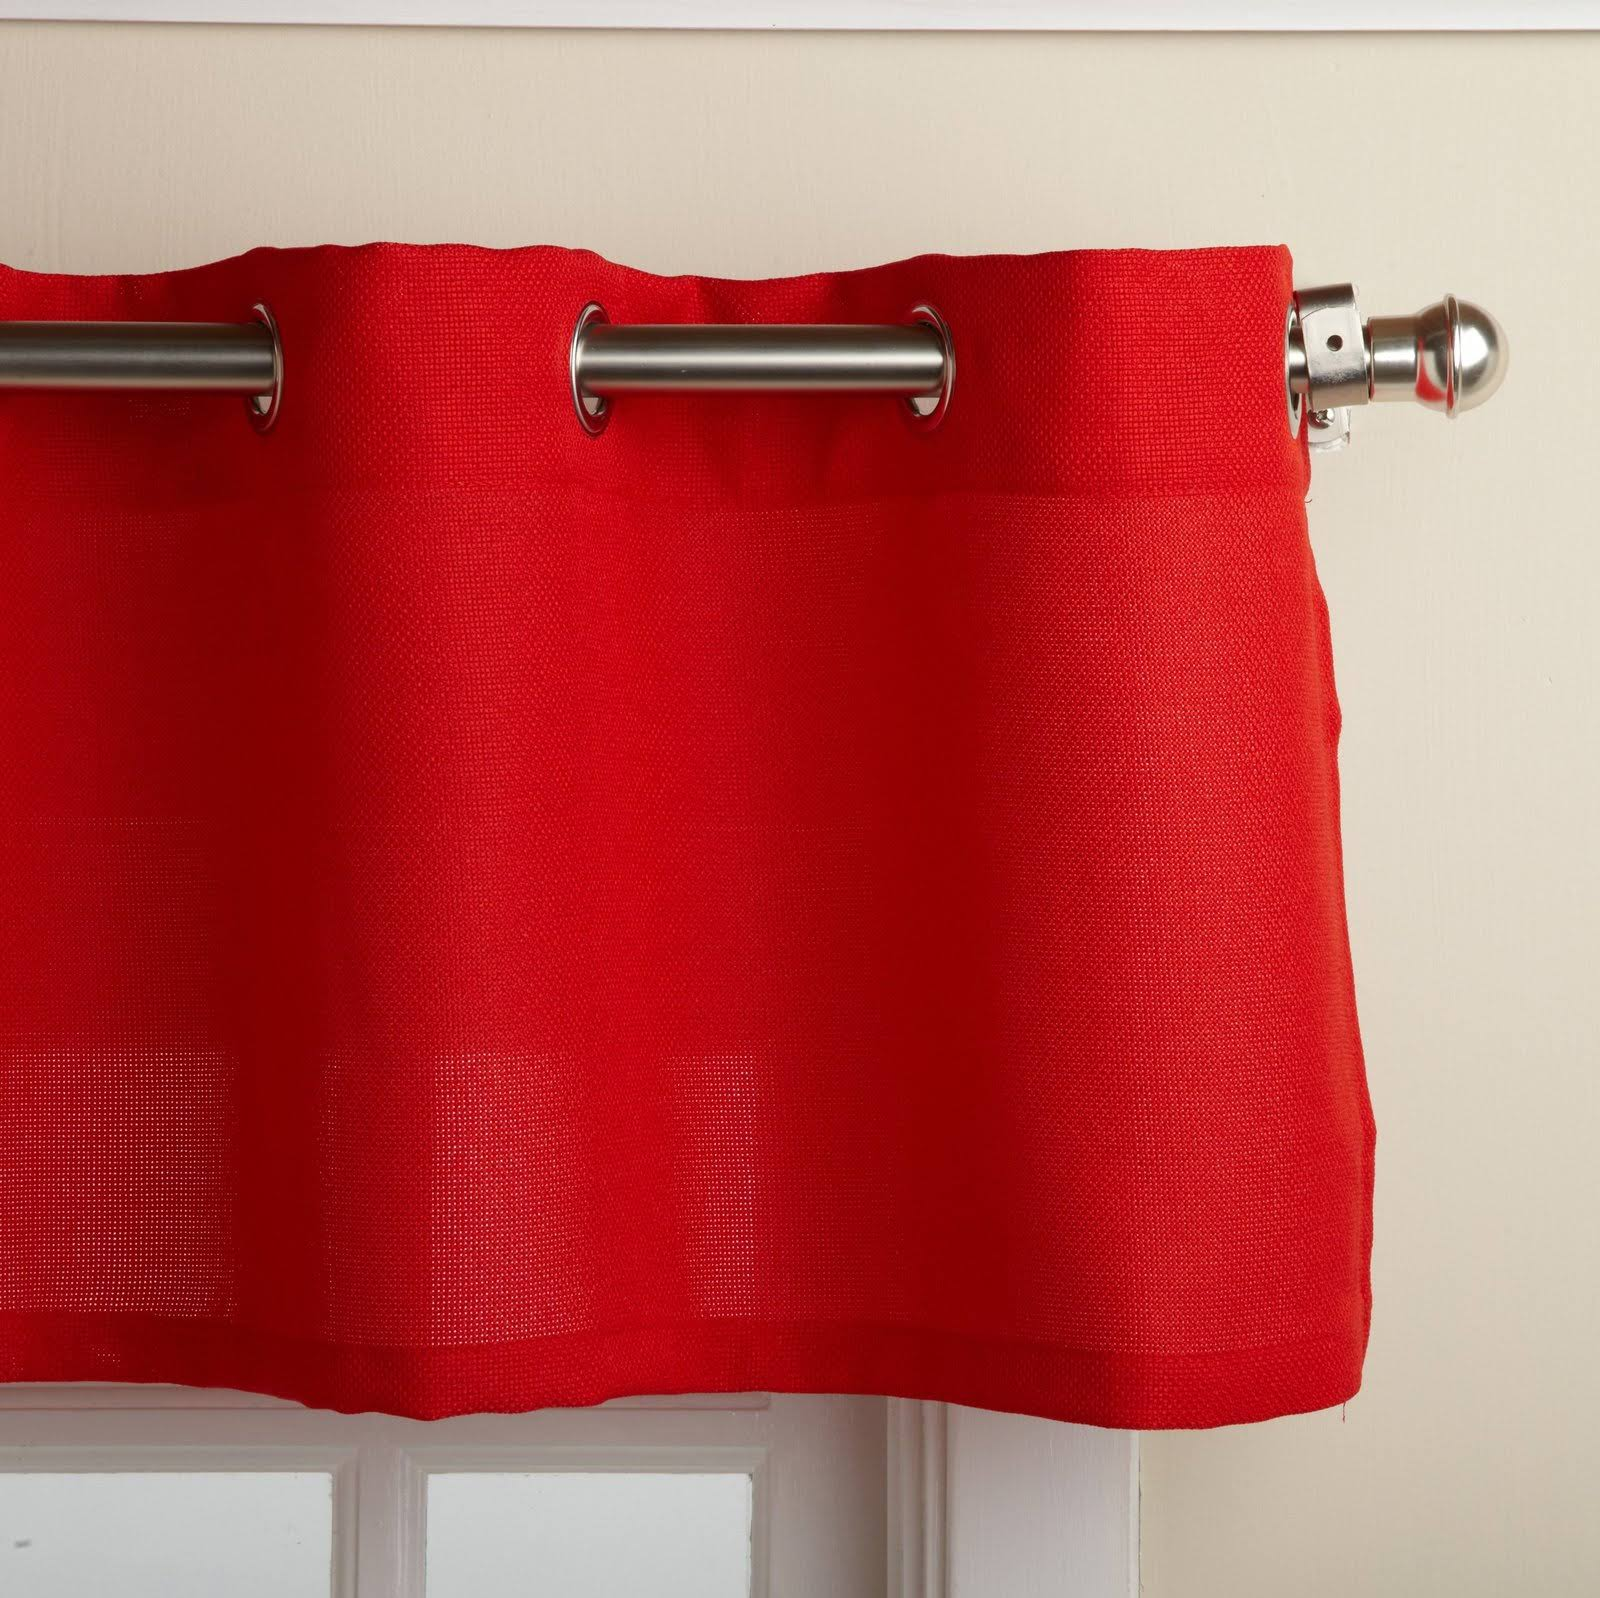 Lorraine Home Fashions Jackson 58-Inch x 12-Inch Valance Red